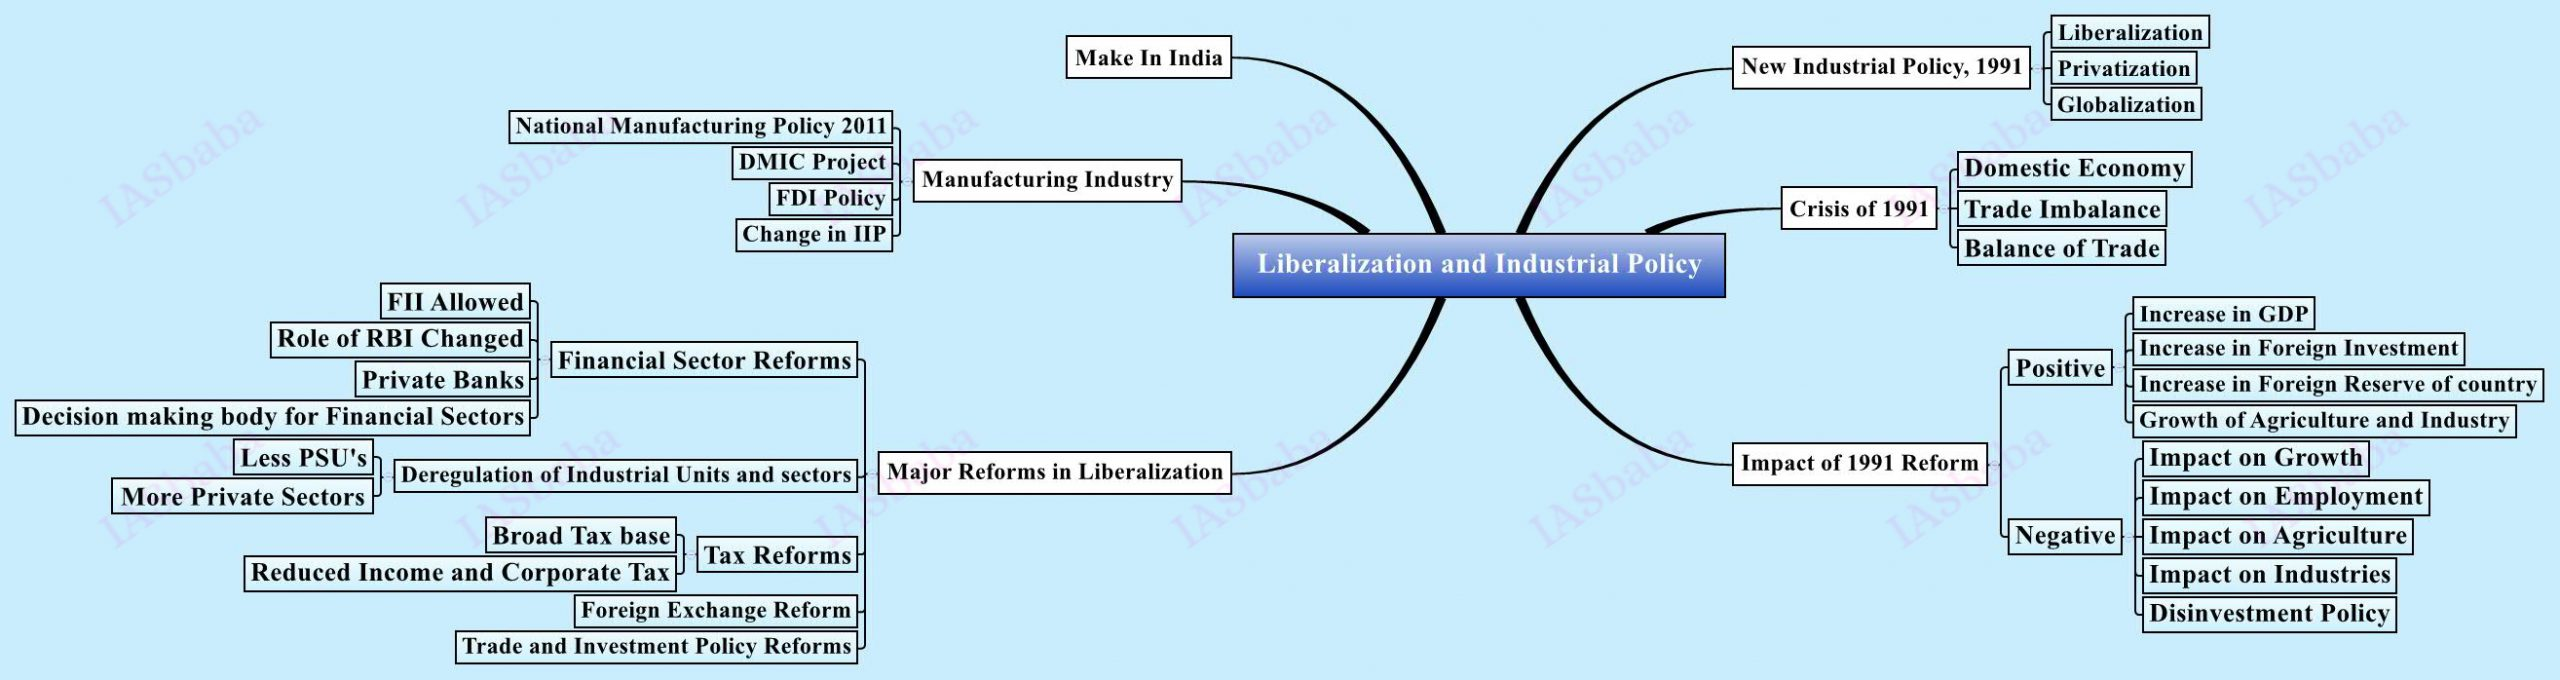 Liberalization-and-Industrial-Policy